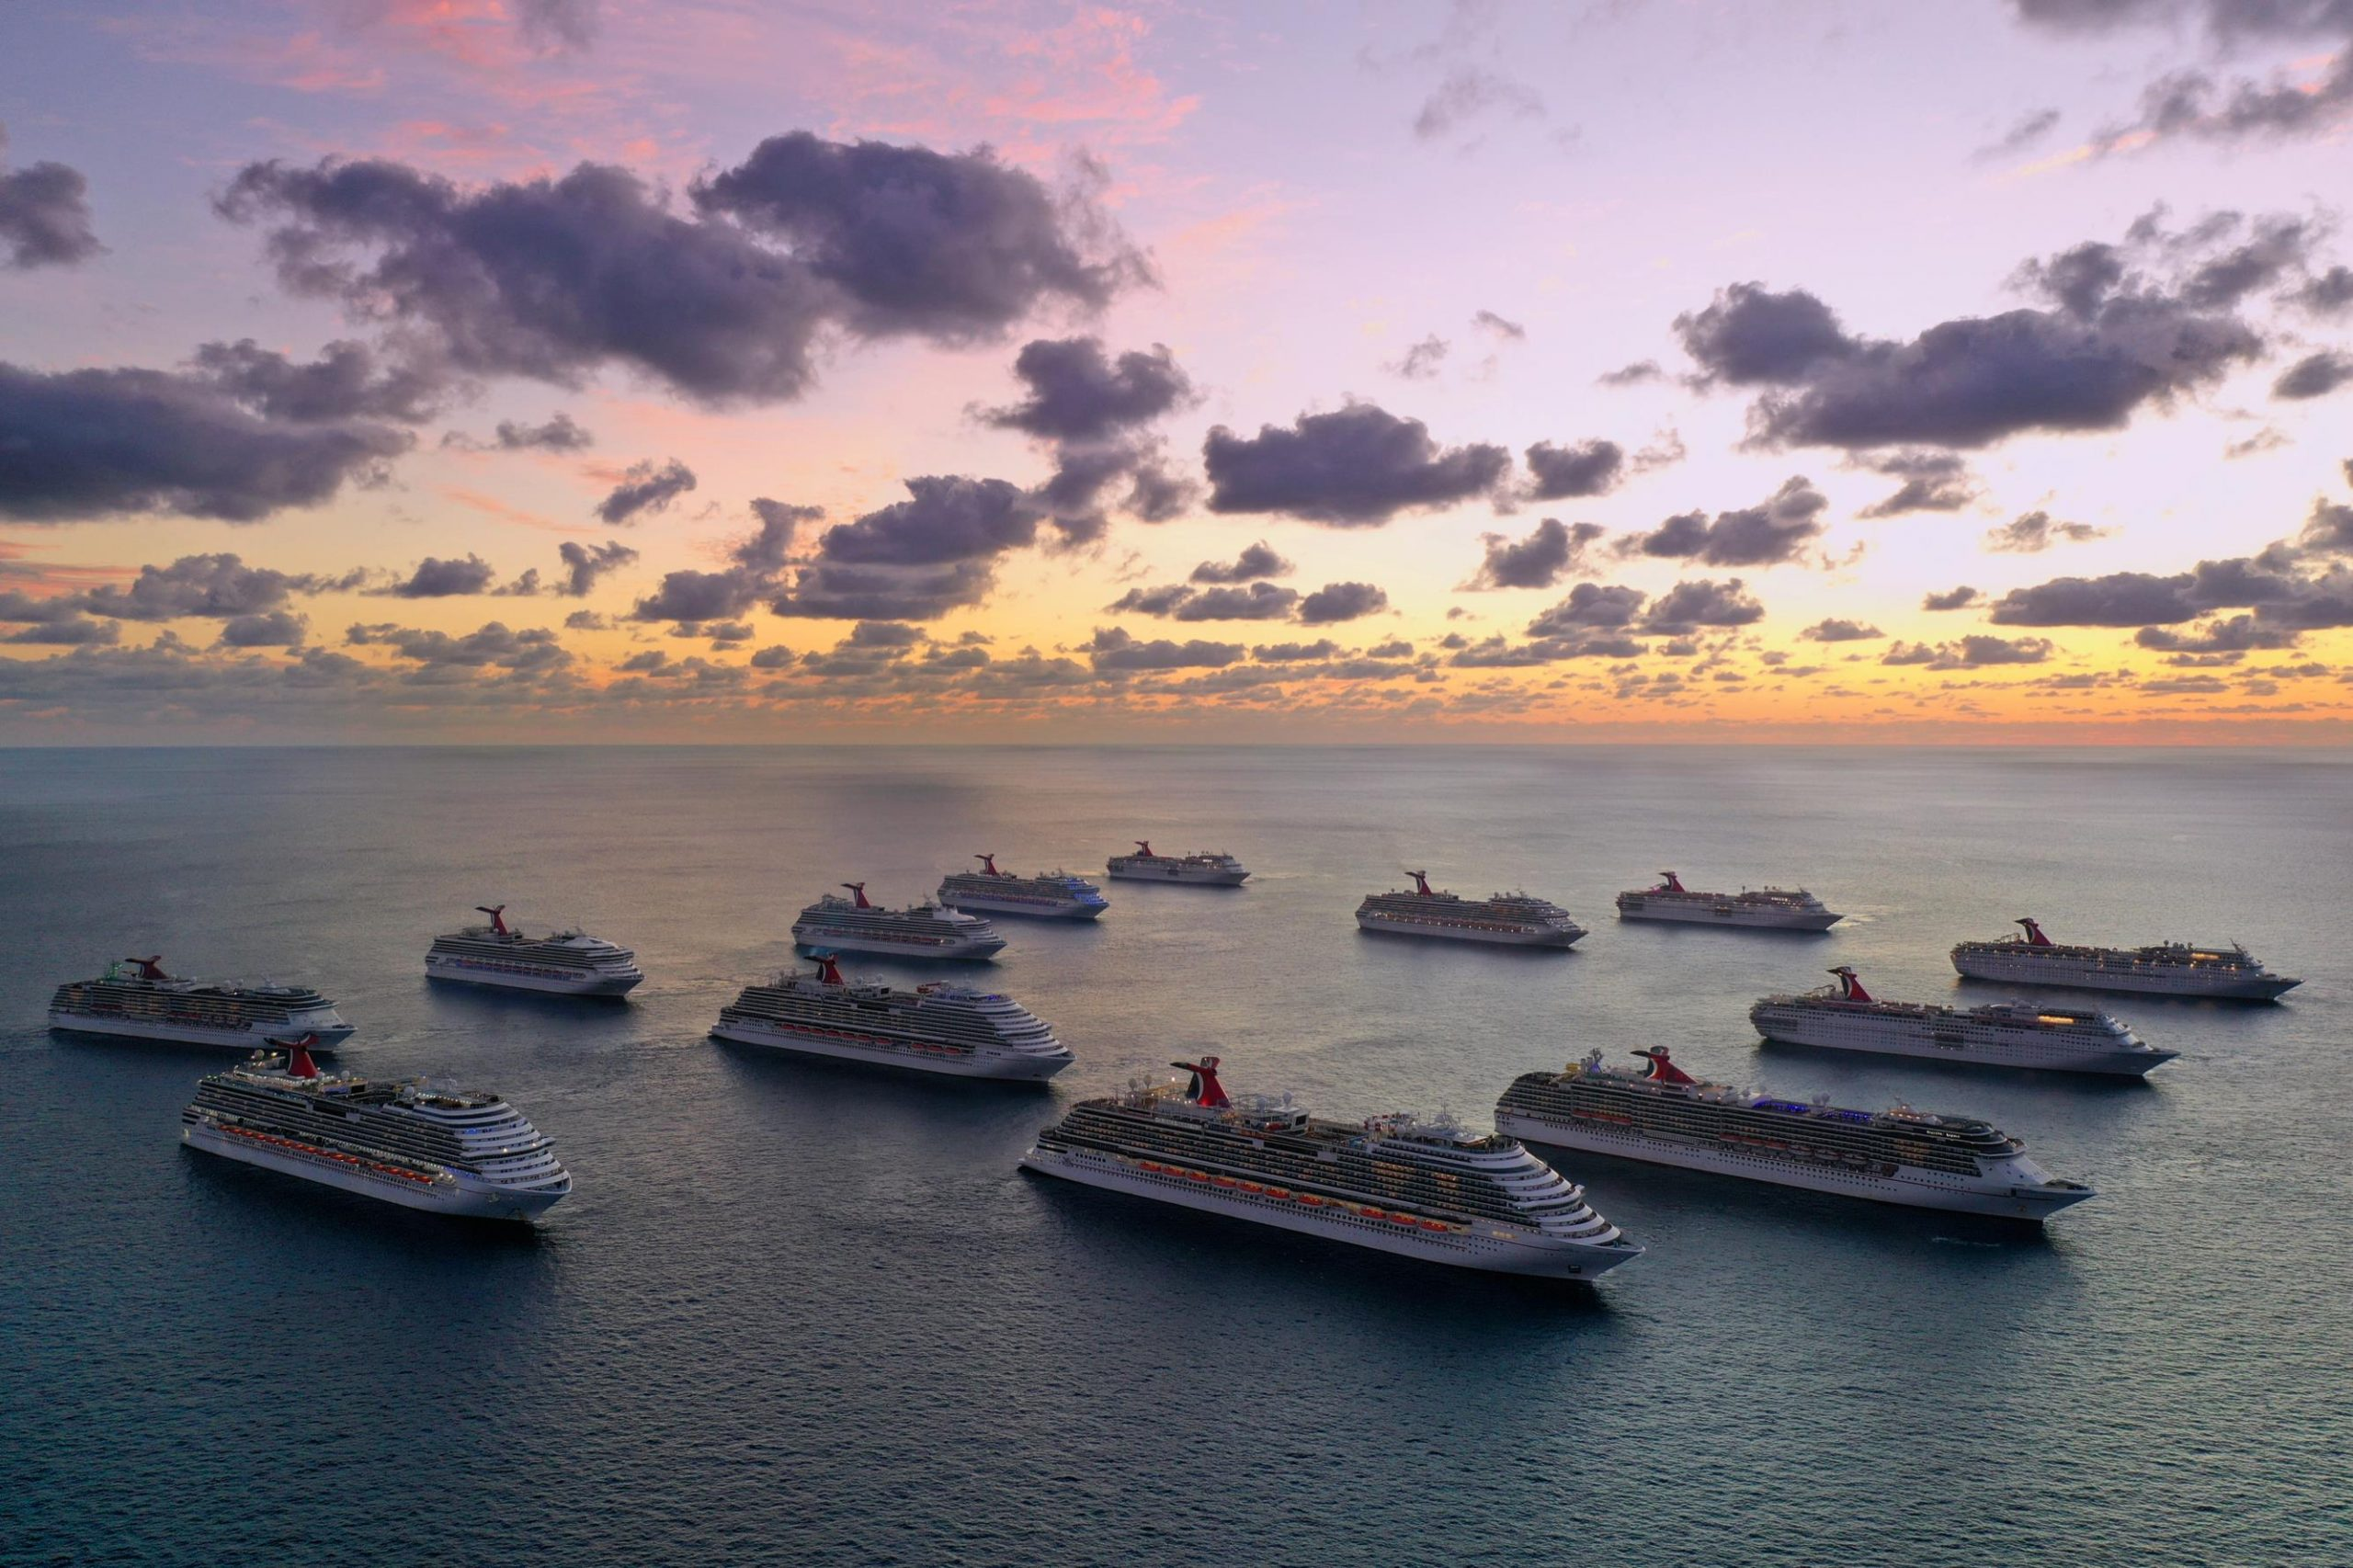 Carnival Cruise Line ships are docked off the coast of The Bahamas as they prepare to repatriate crew members to their home countries throughout the world (July 2020)